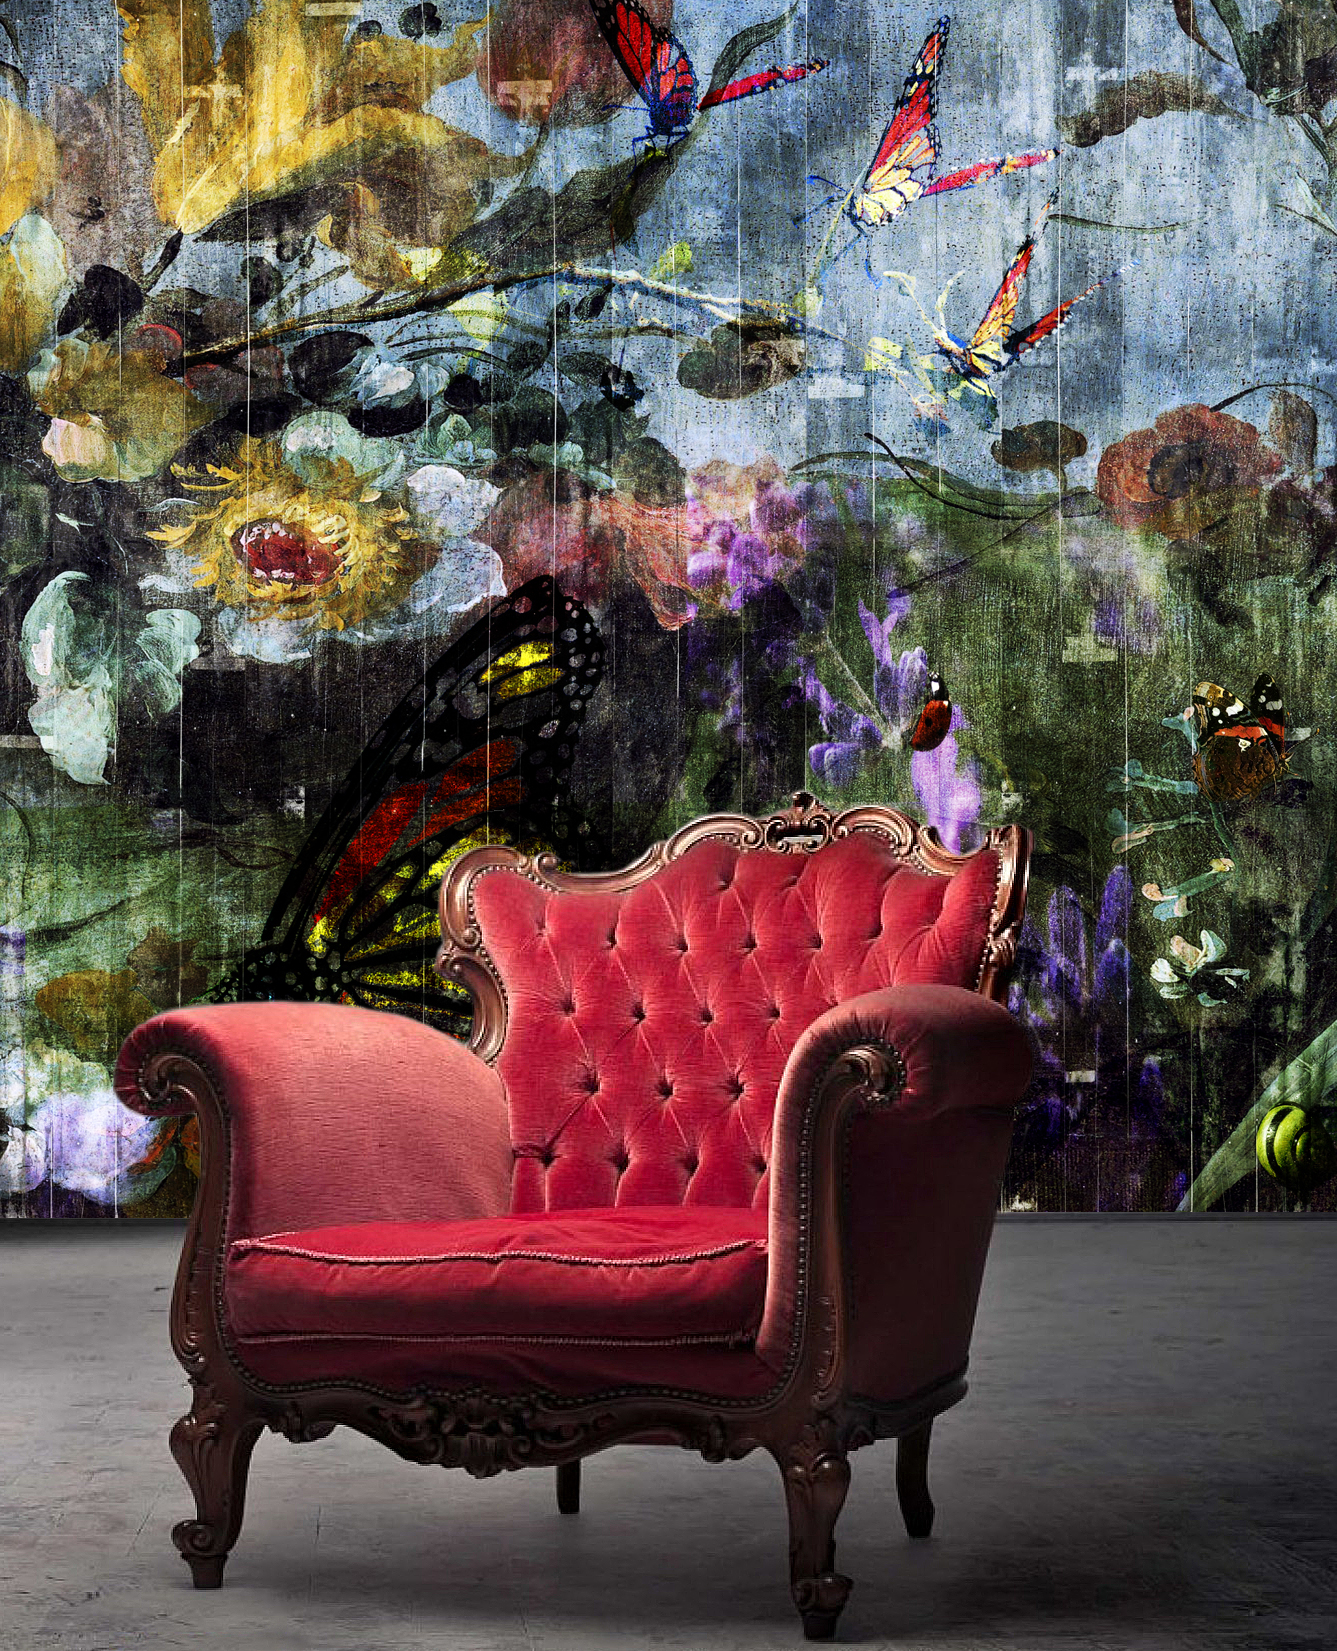 Butterfly Garden, a wallpaper from the Dutch Dreams wallpaper collection by La Aurelia